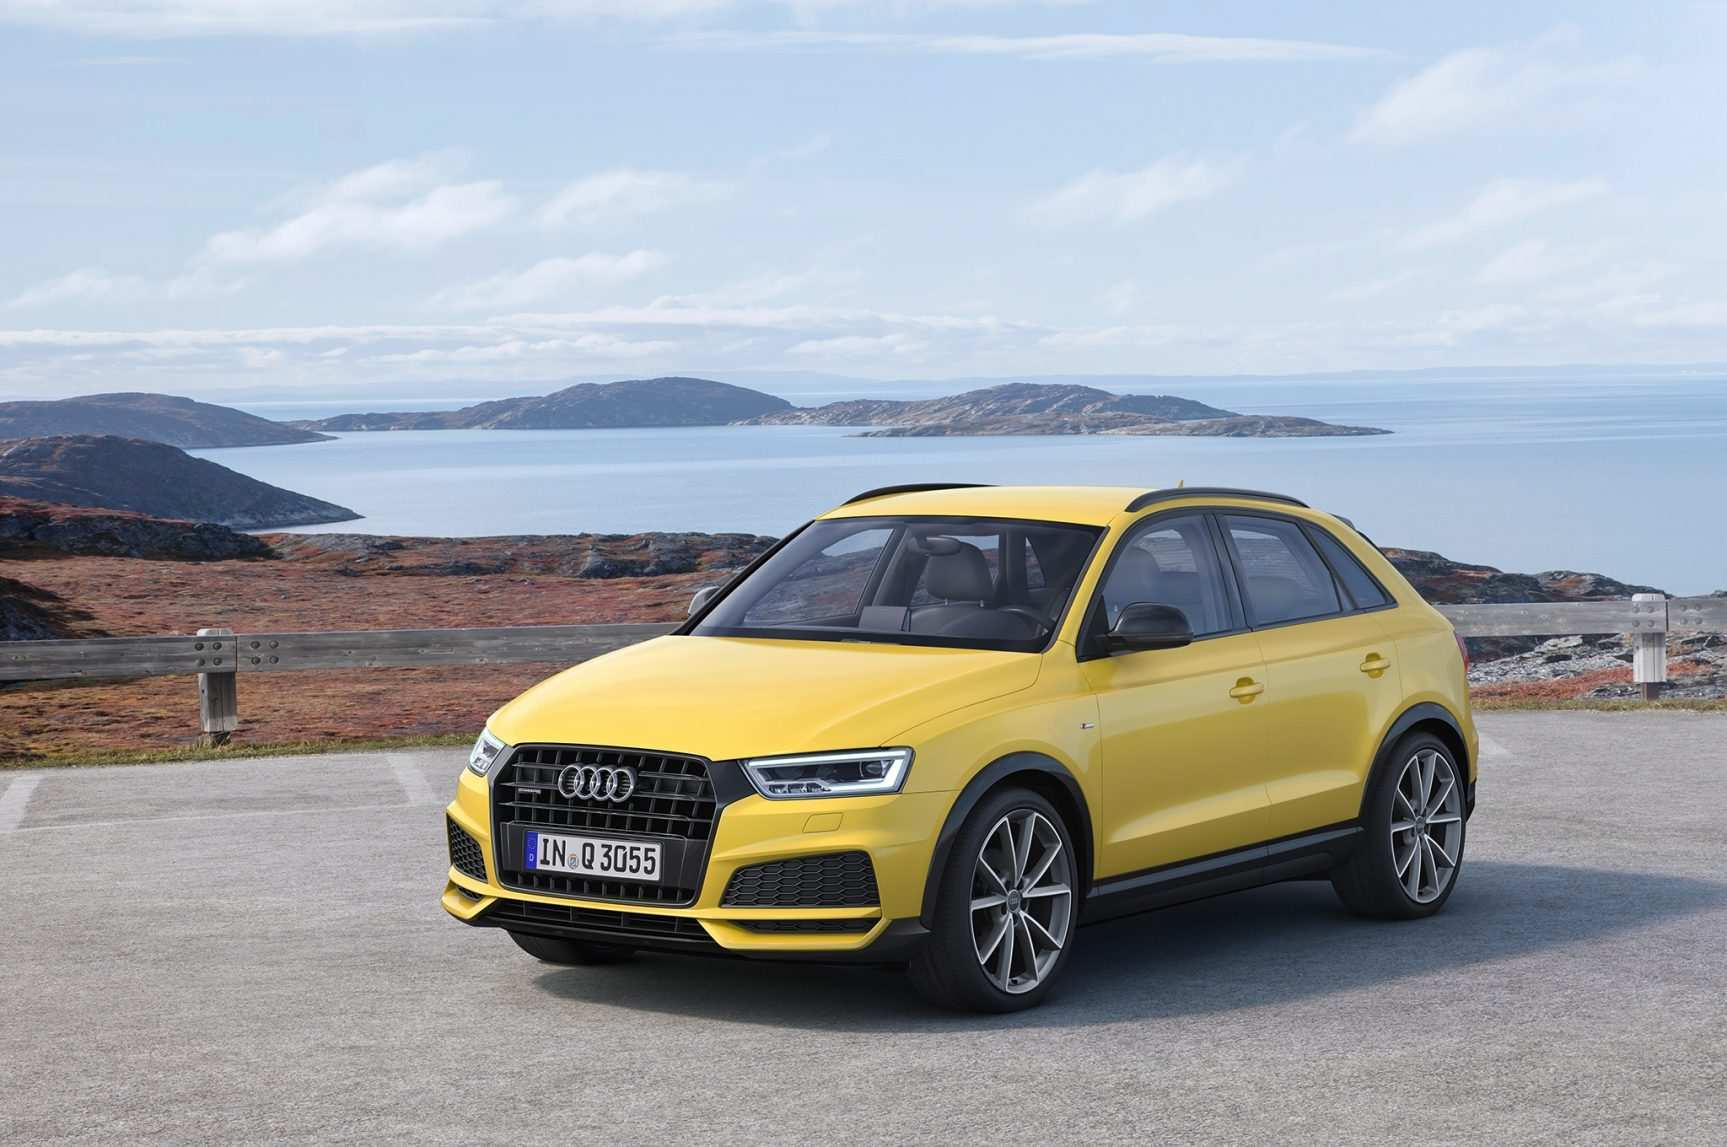 73 Concept of New Release Date For 2019 Audi Q3 New Review Spesification for New Release Date For 2019 Audi Q3 New Review